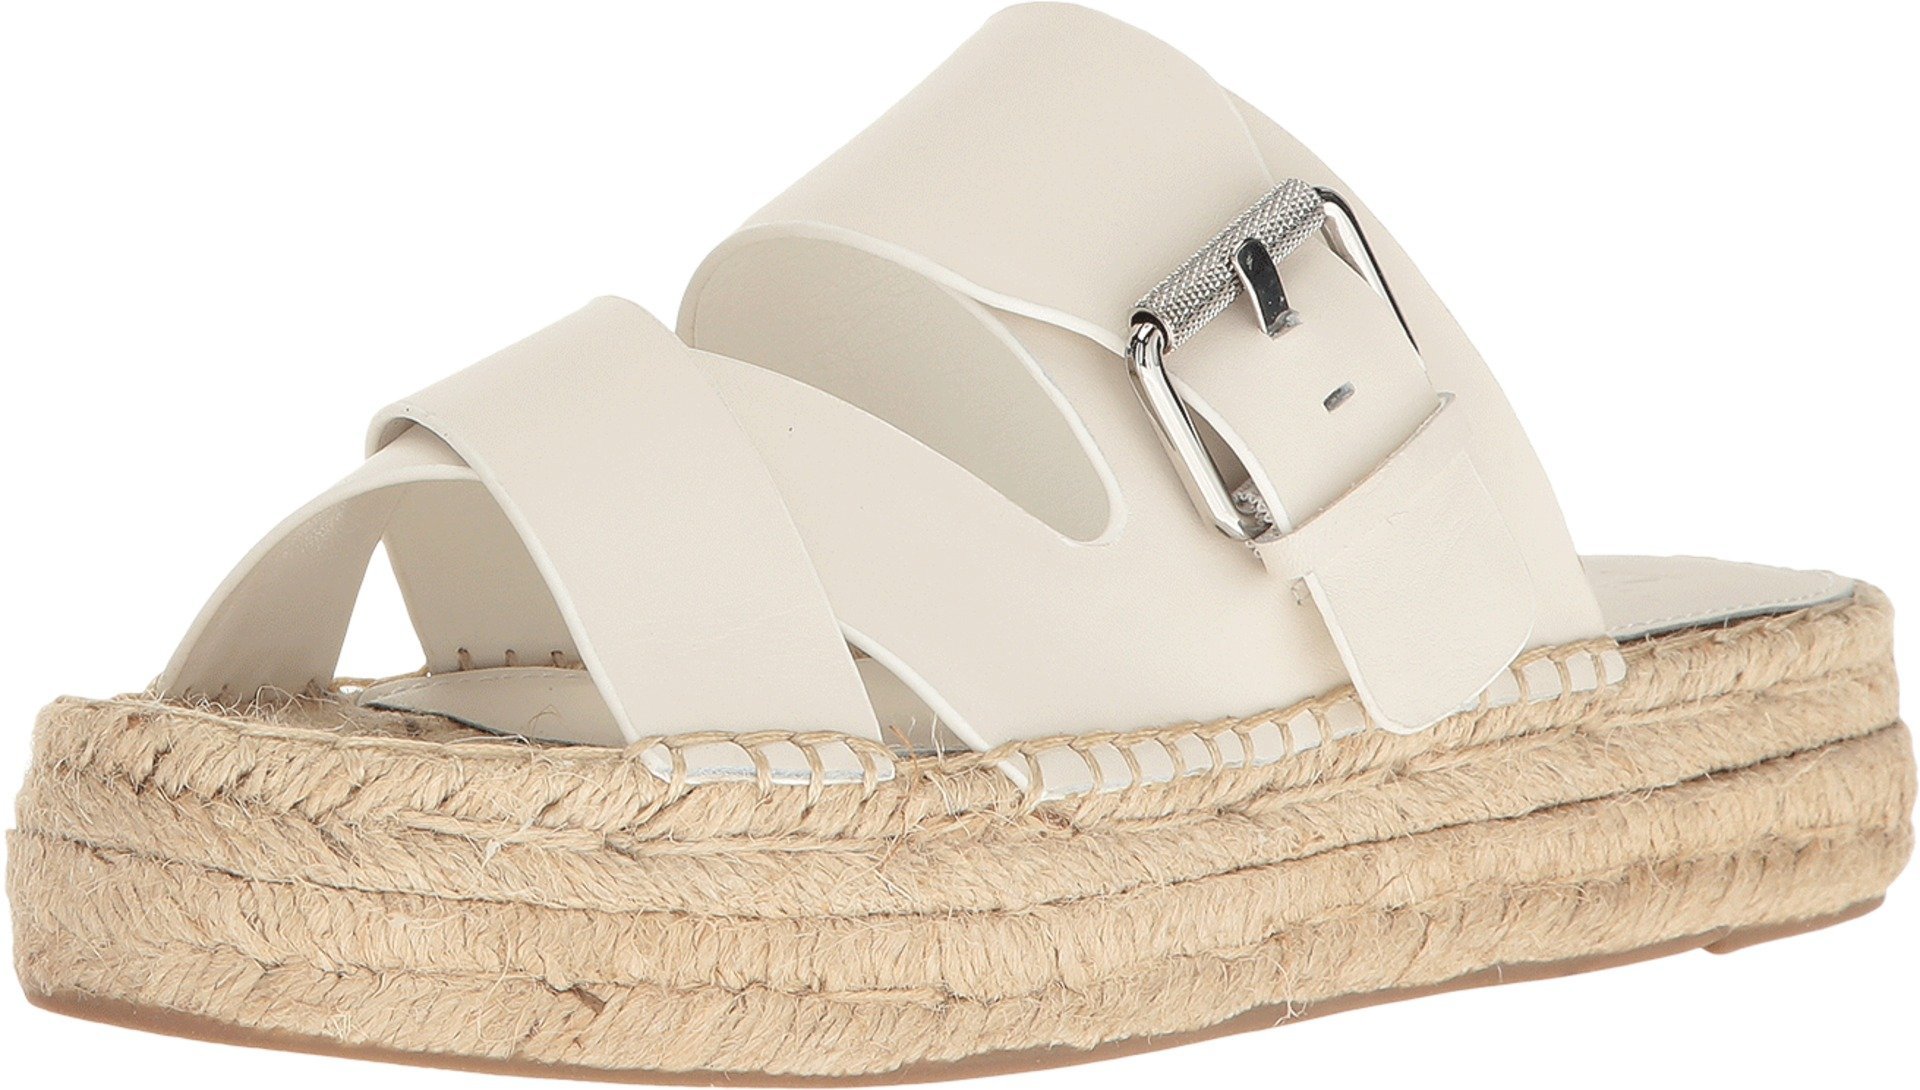 Marc Fisher LTD Women's Venita Chic Cream Fine Stetson Sandal